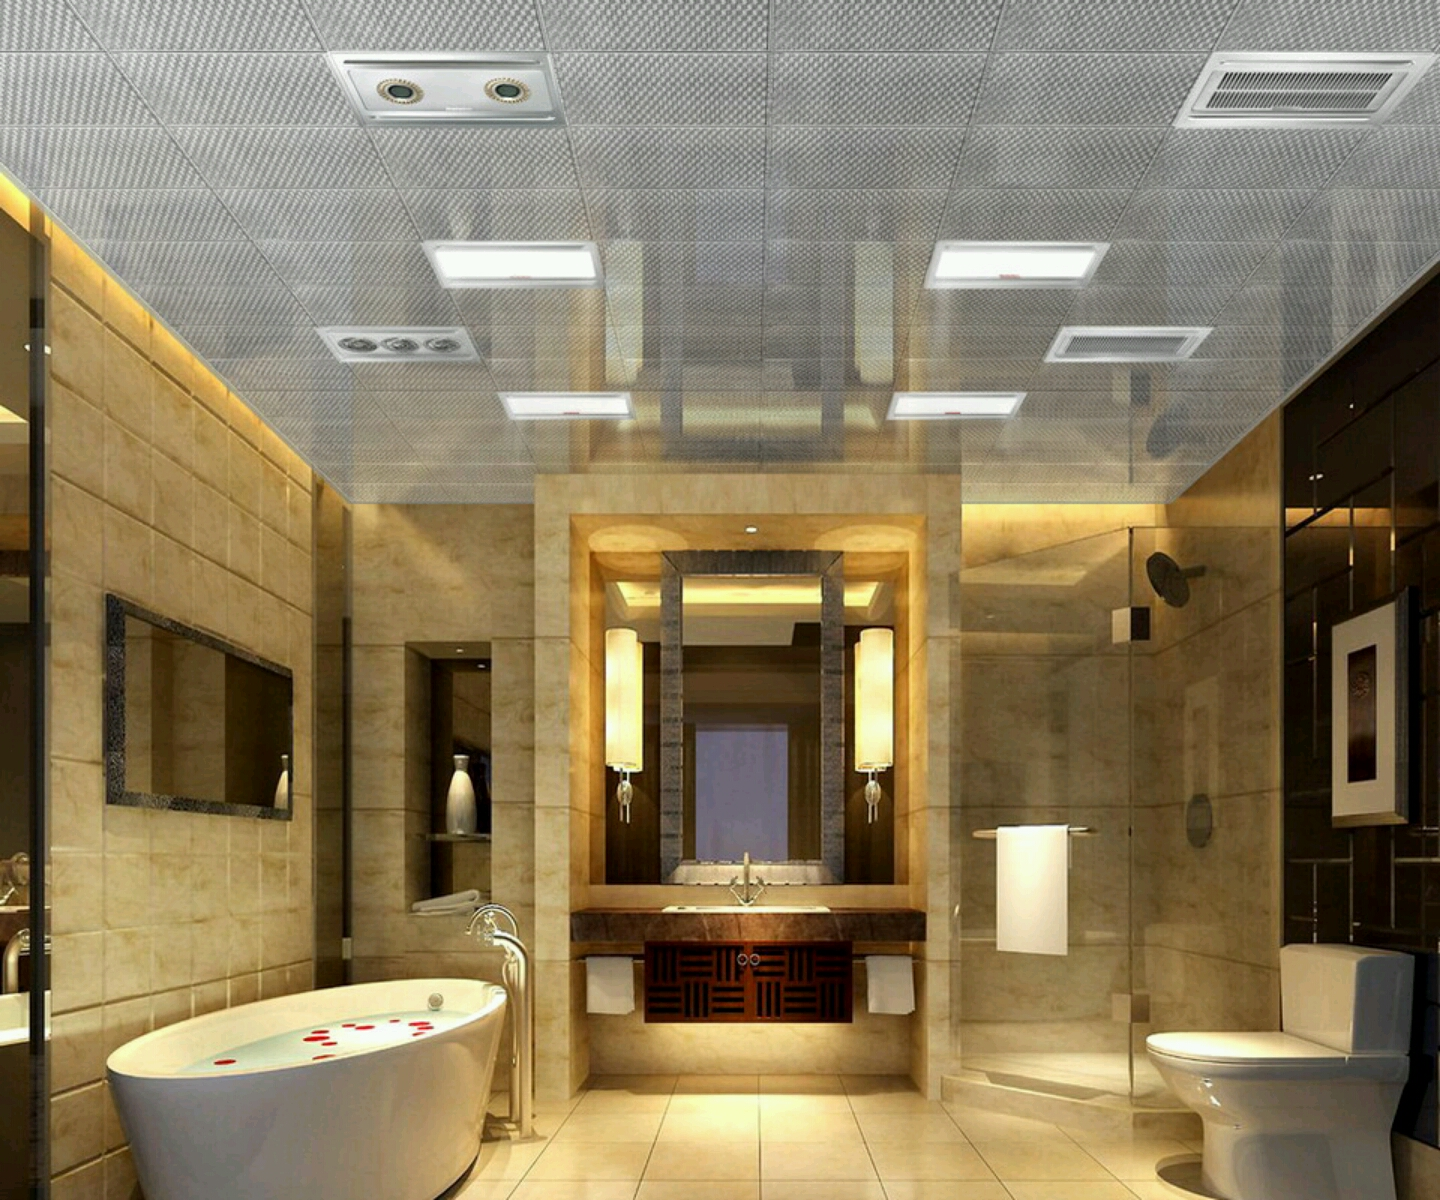 New home designs latest luxury bathrooms designs ideas for Latest bathroom interior